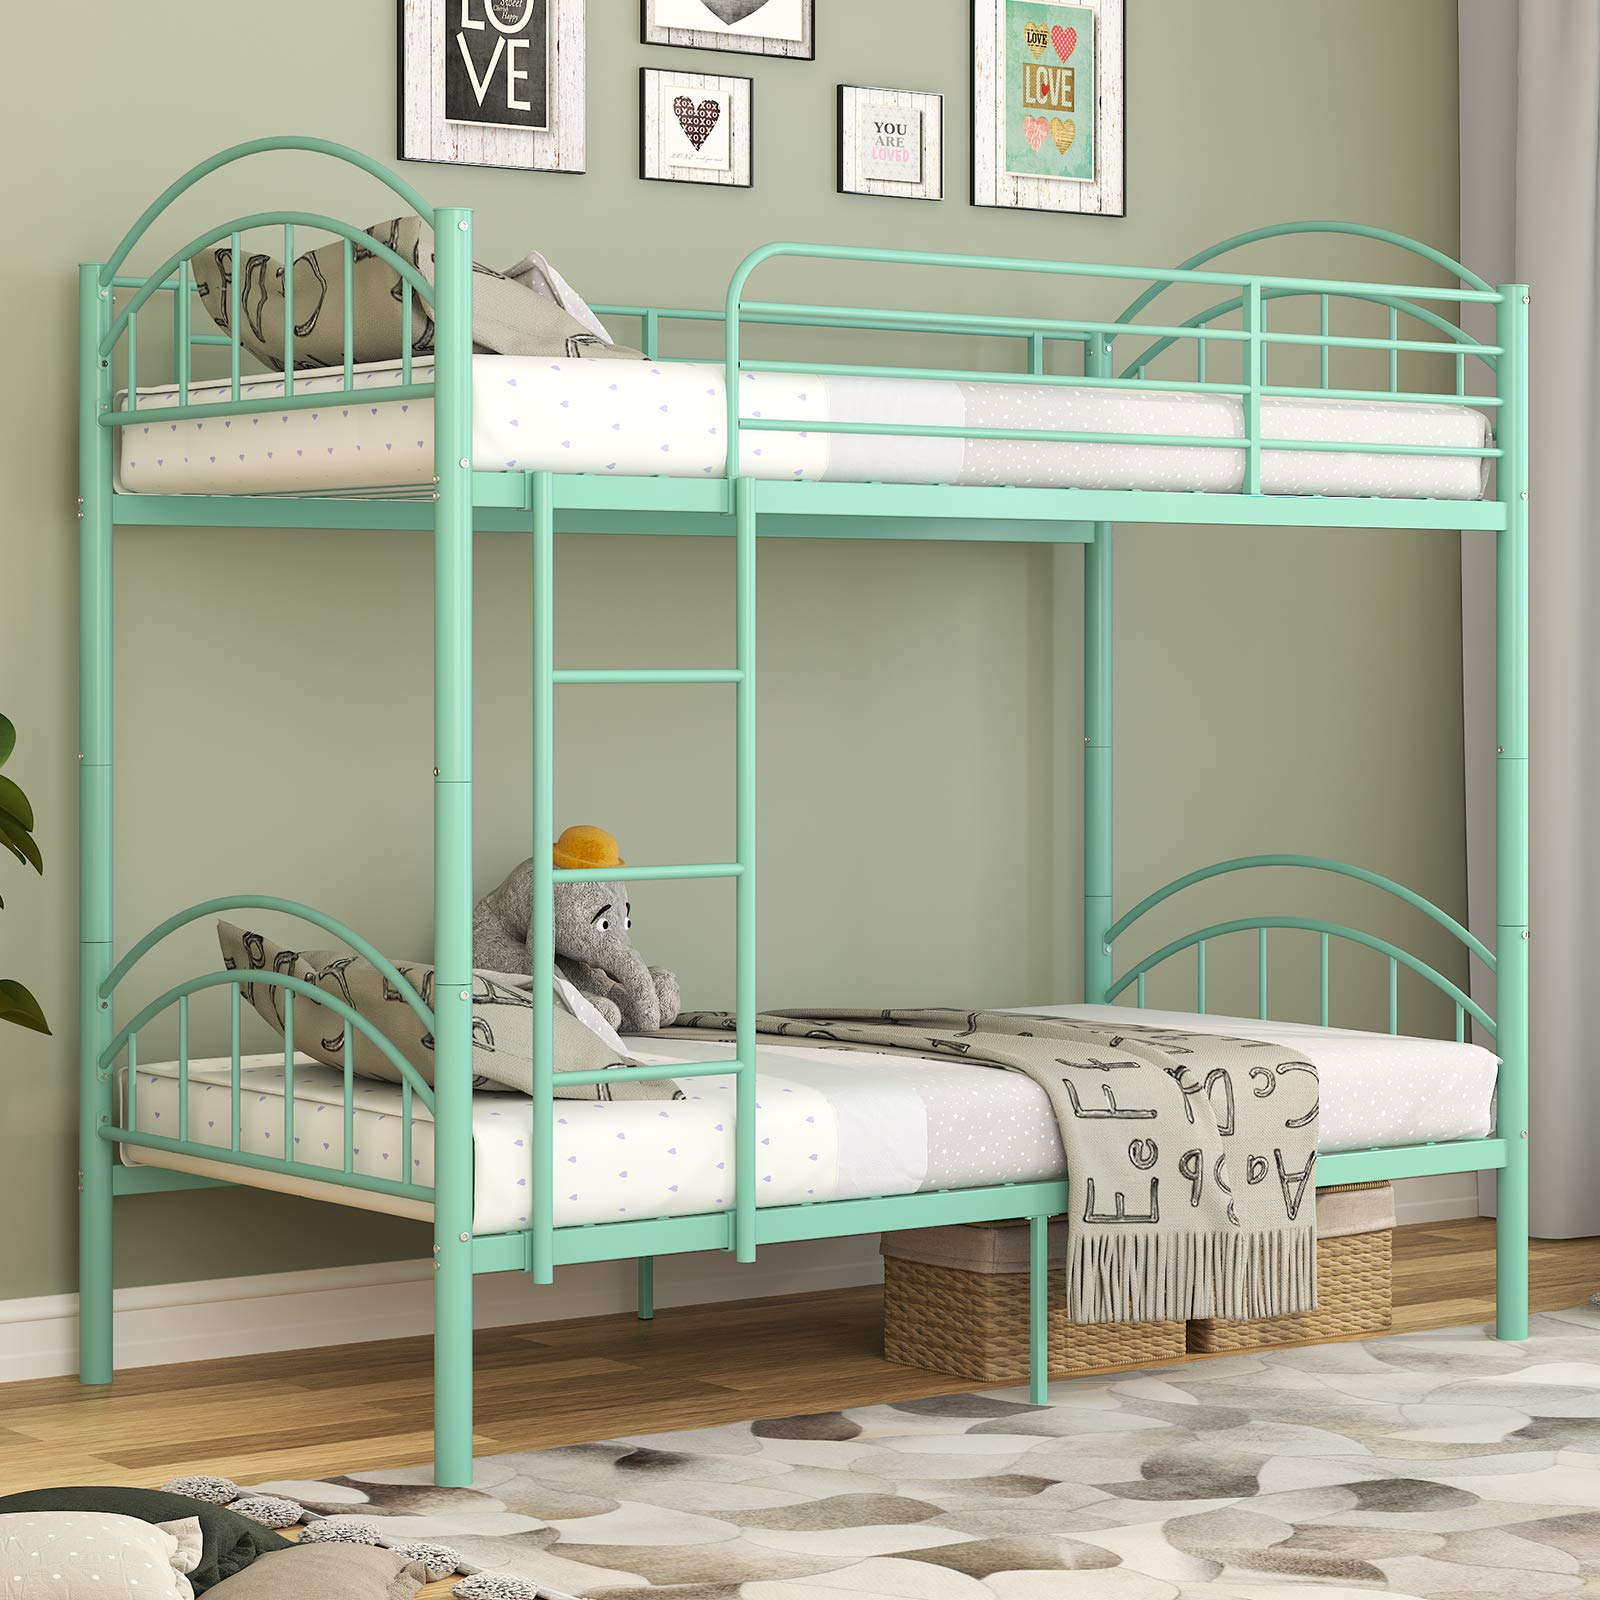 mecor Metal Twin Over Twin Bunk Bed/Convertible Into 2 Individual Bed/Removable Ladder & Safety Guard Rail for Boys, Girls, Kids, Teens(Mint Green)